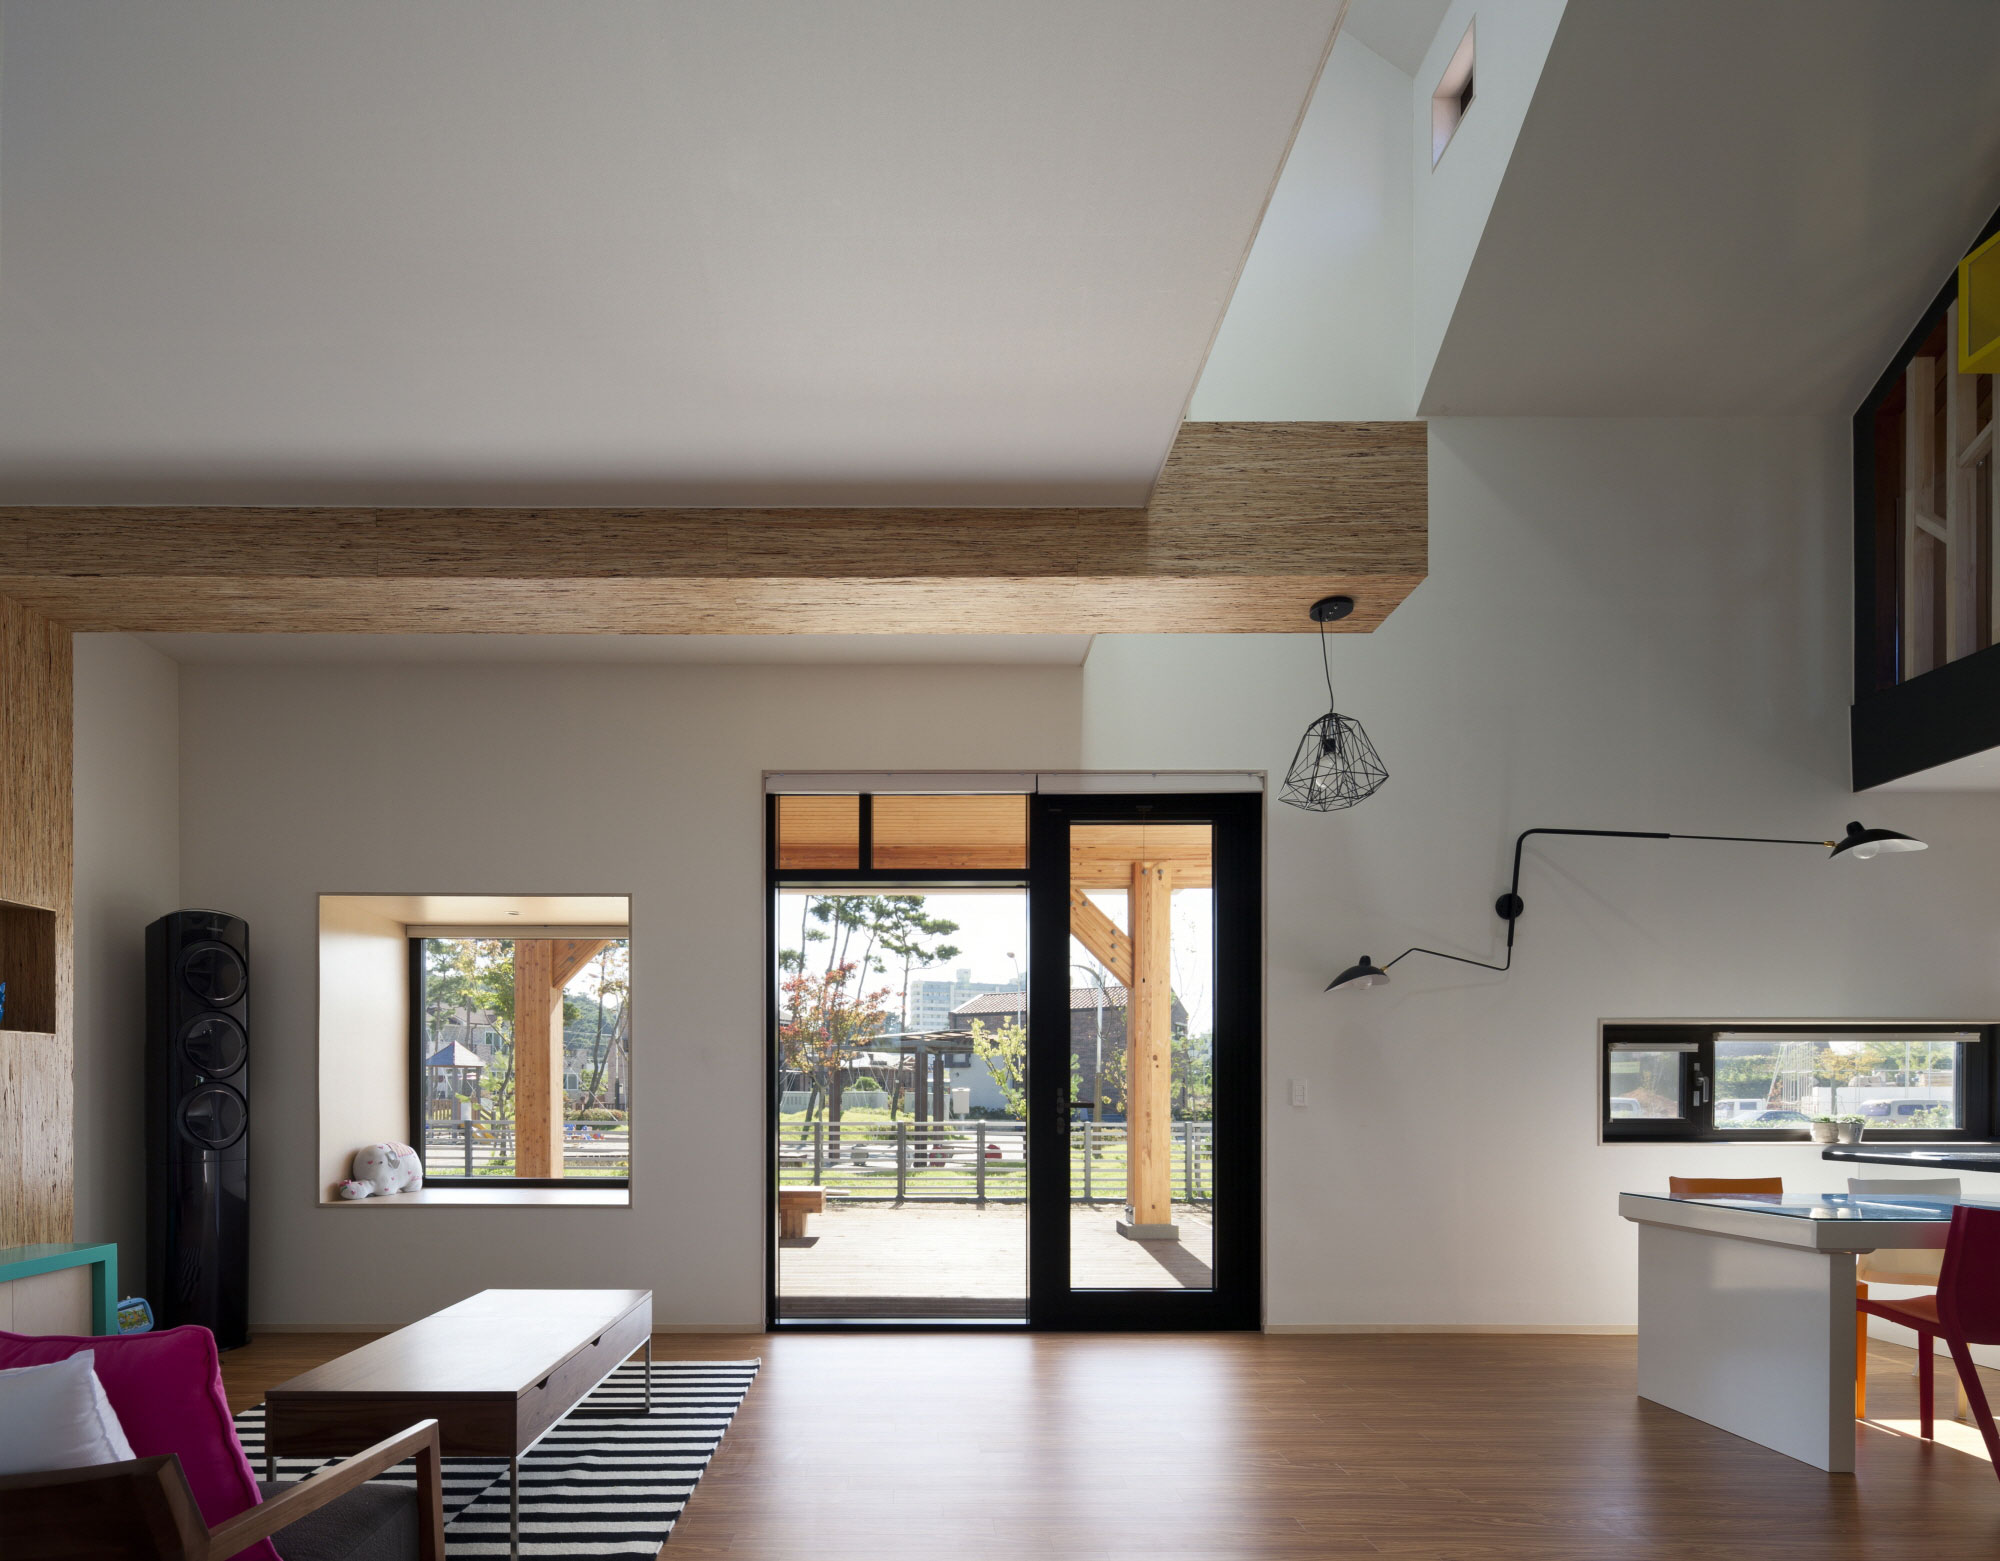 Iksan T Shaped House in South Korea by KDDH architects-10